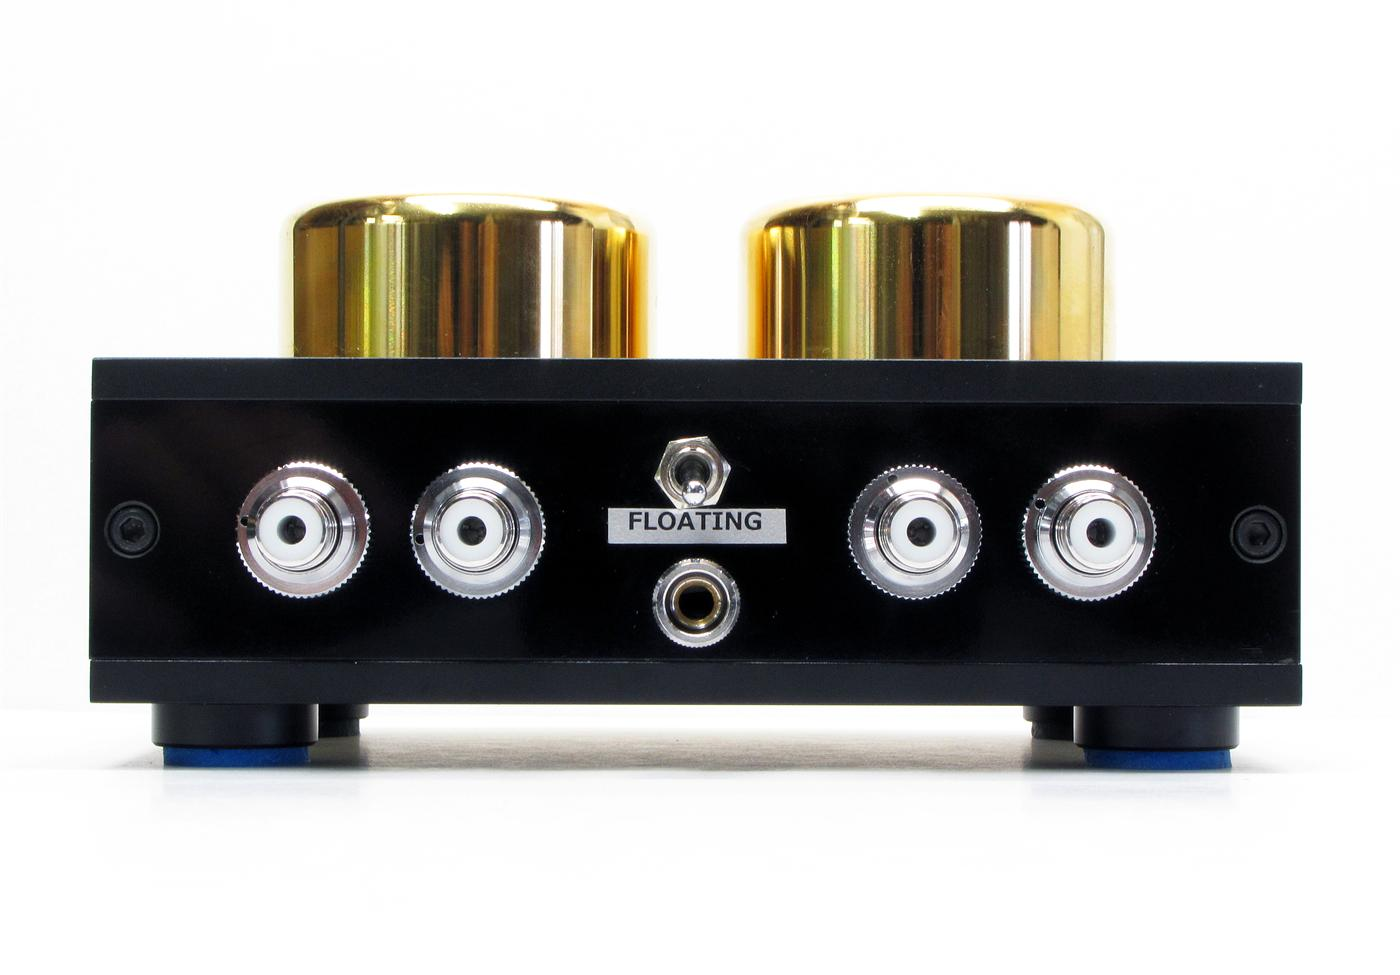 Ikeda SUT. Product of the Year at True Audiophile